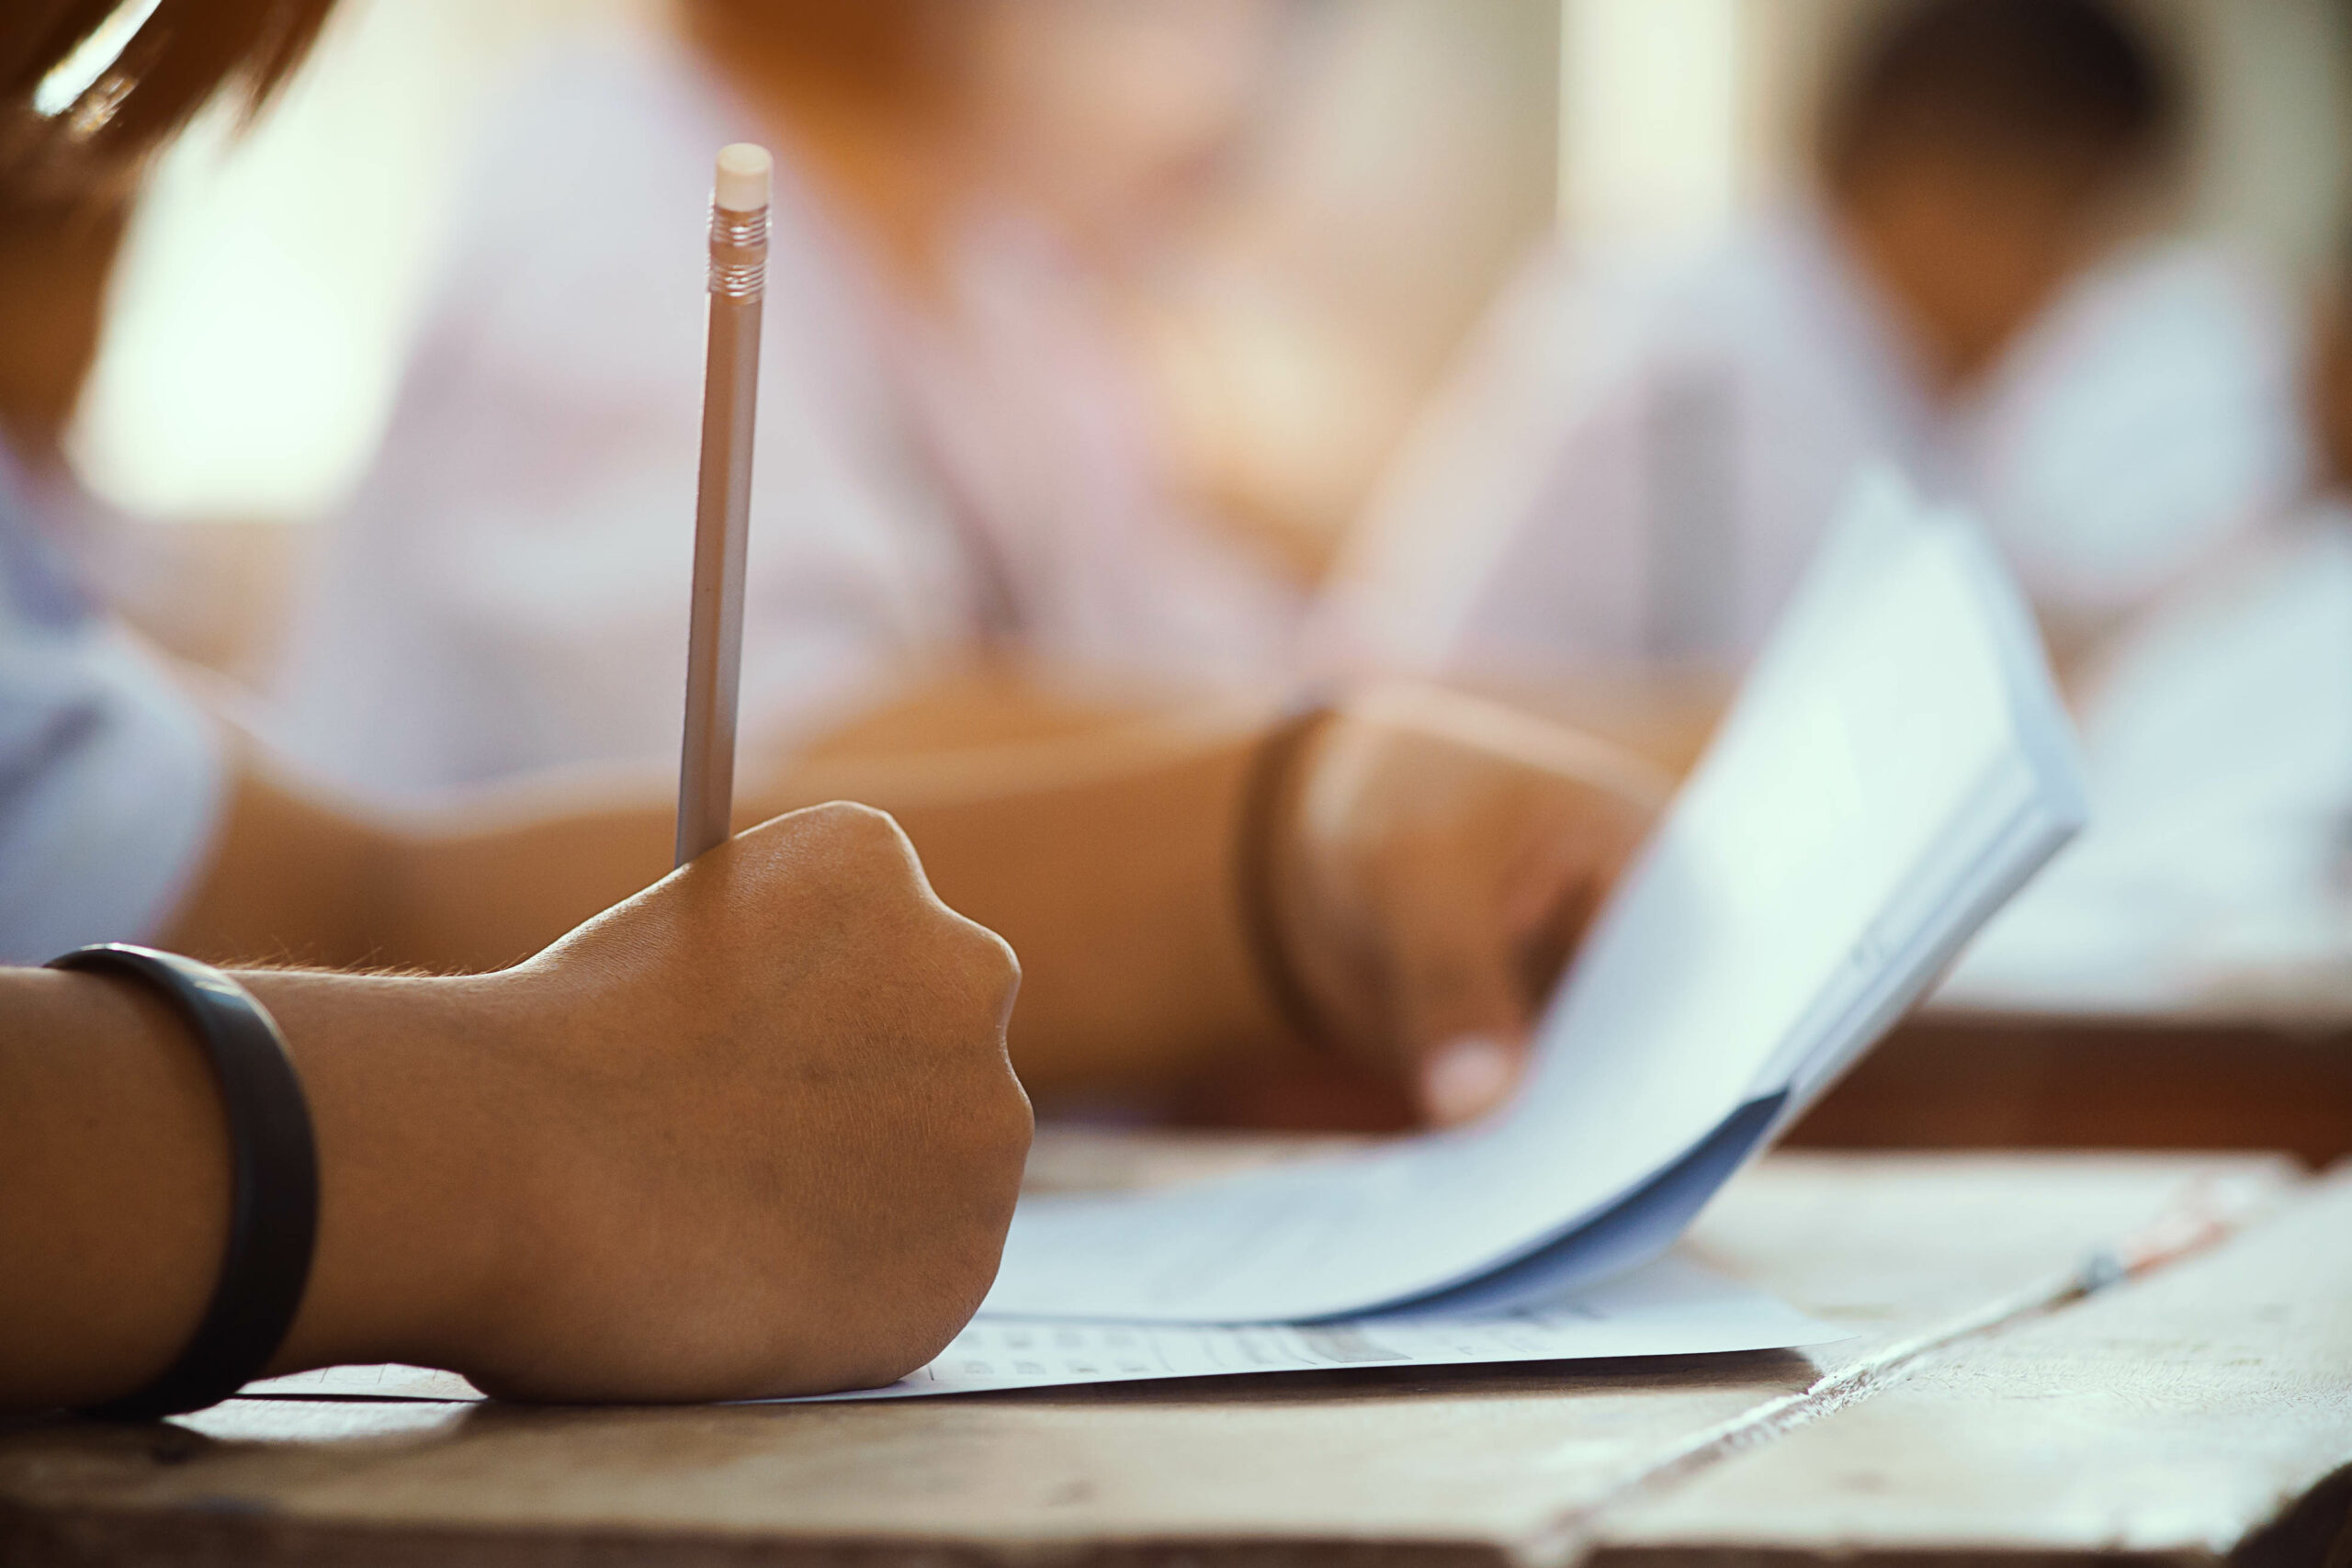 Closeup to hand of student  holding pencil and taking exam in classroom with stress for education test.